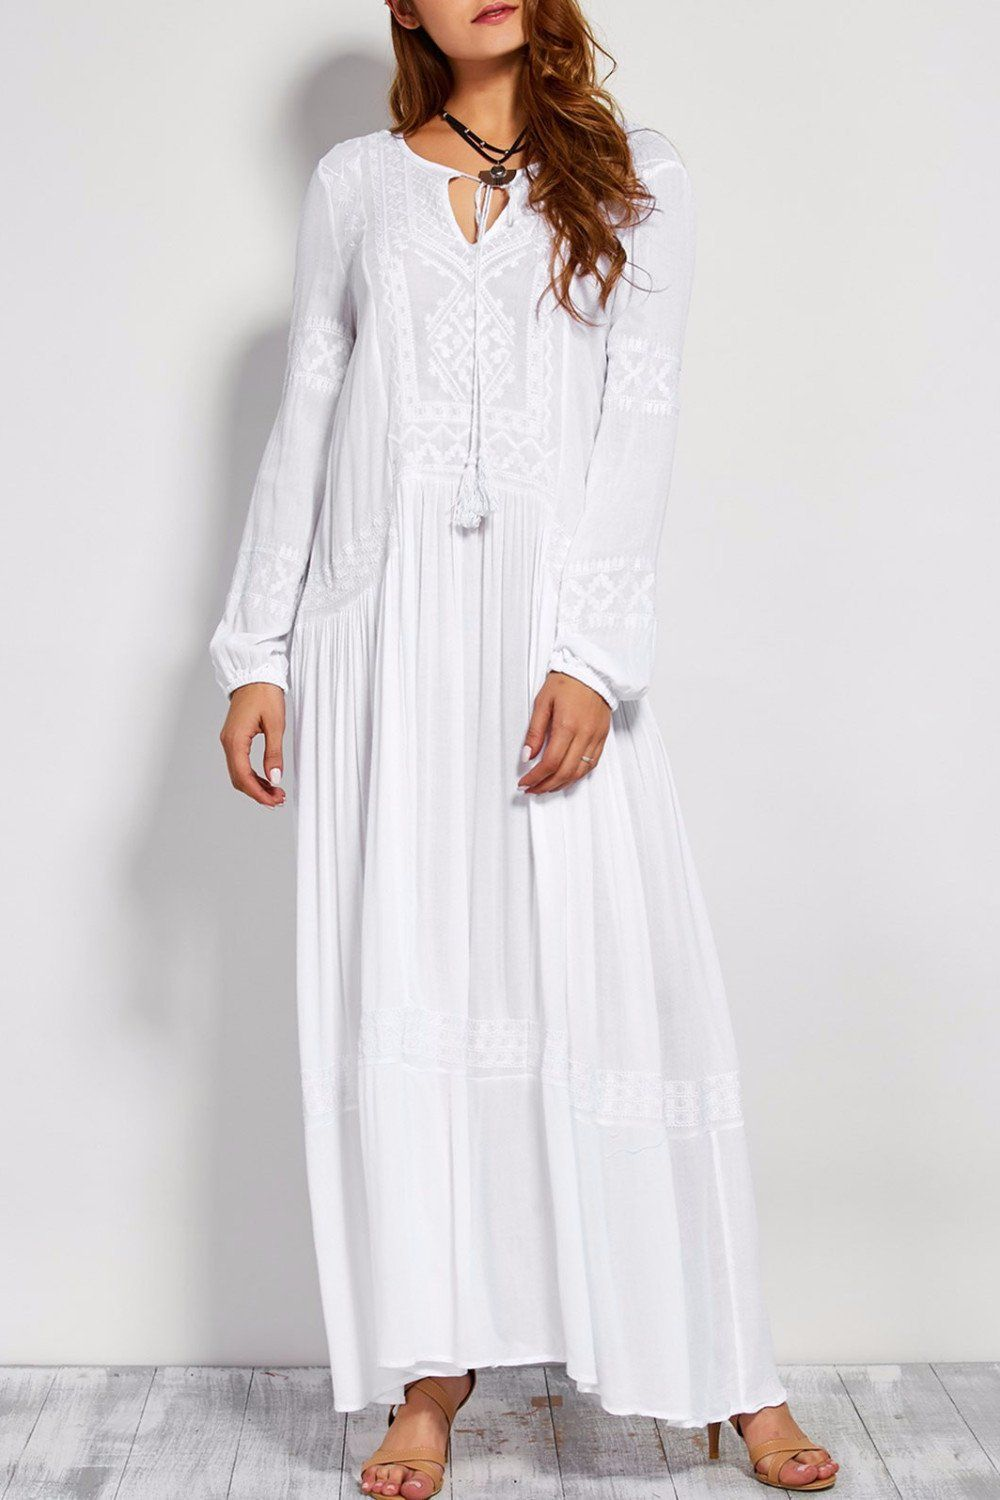 Vienna cotton peasant dress ankle length tassels and peasant dresses